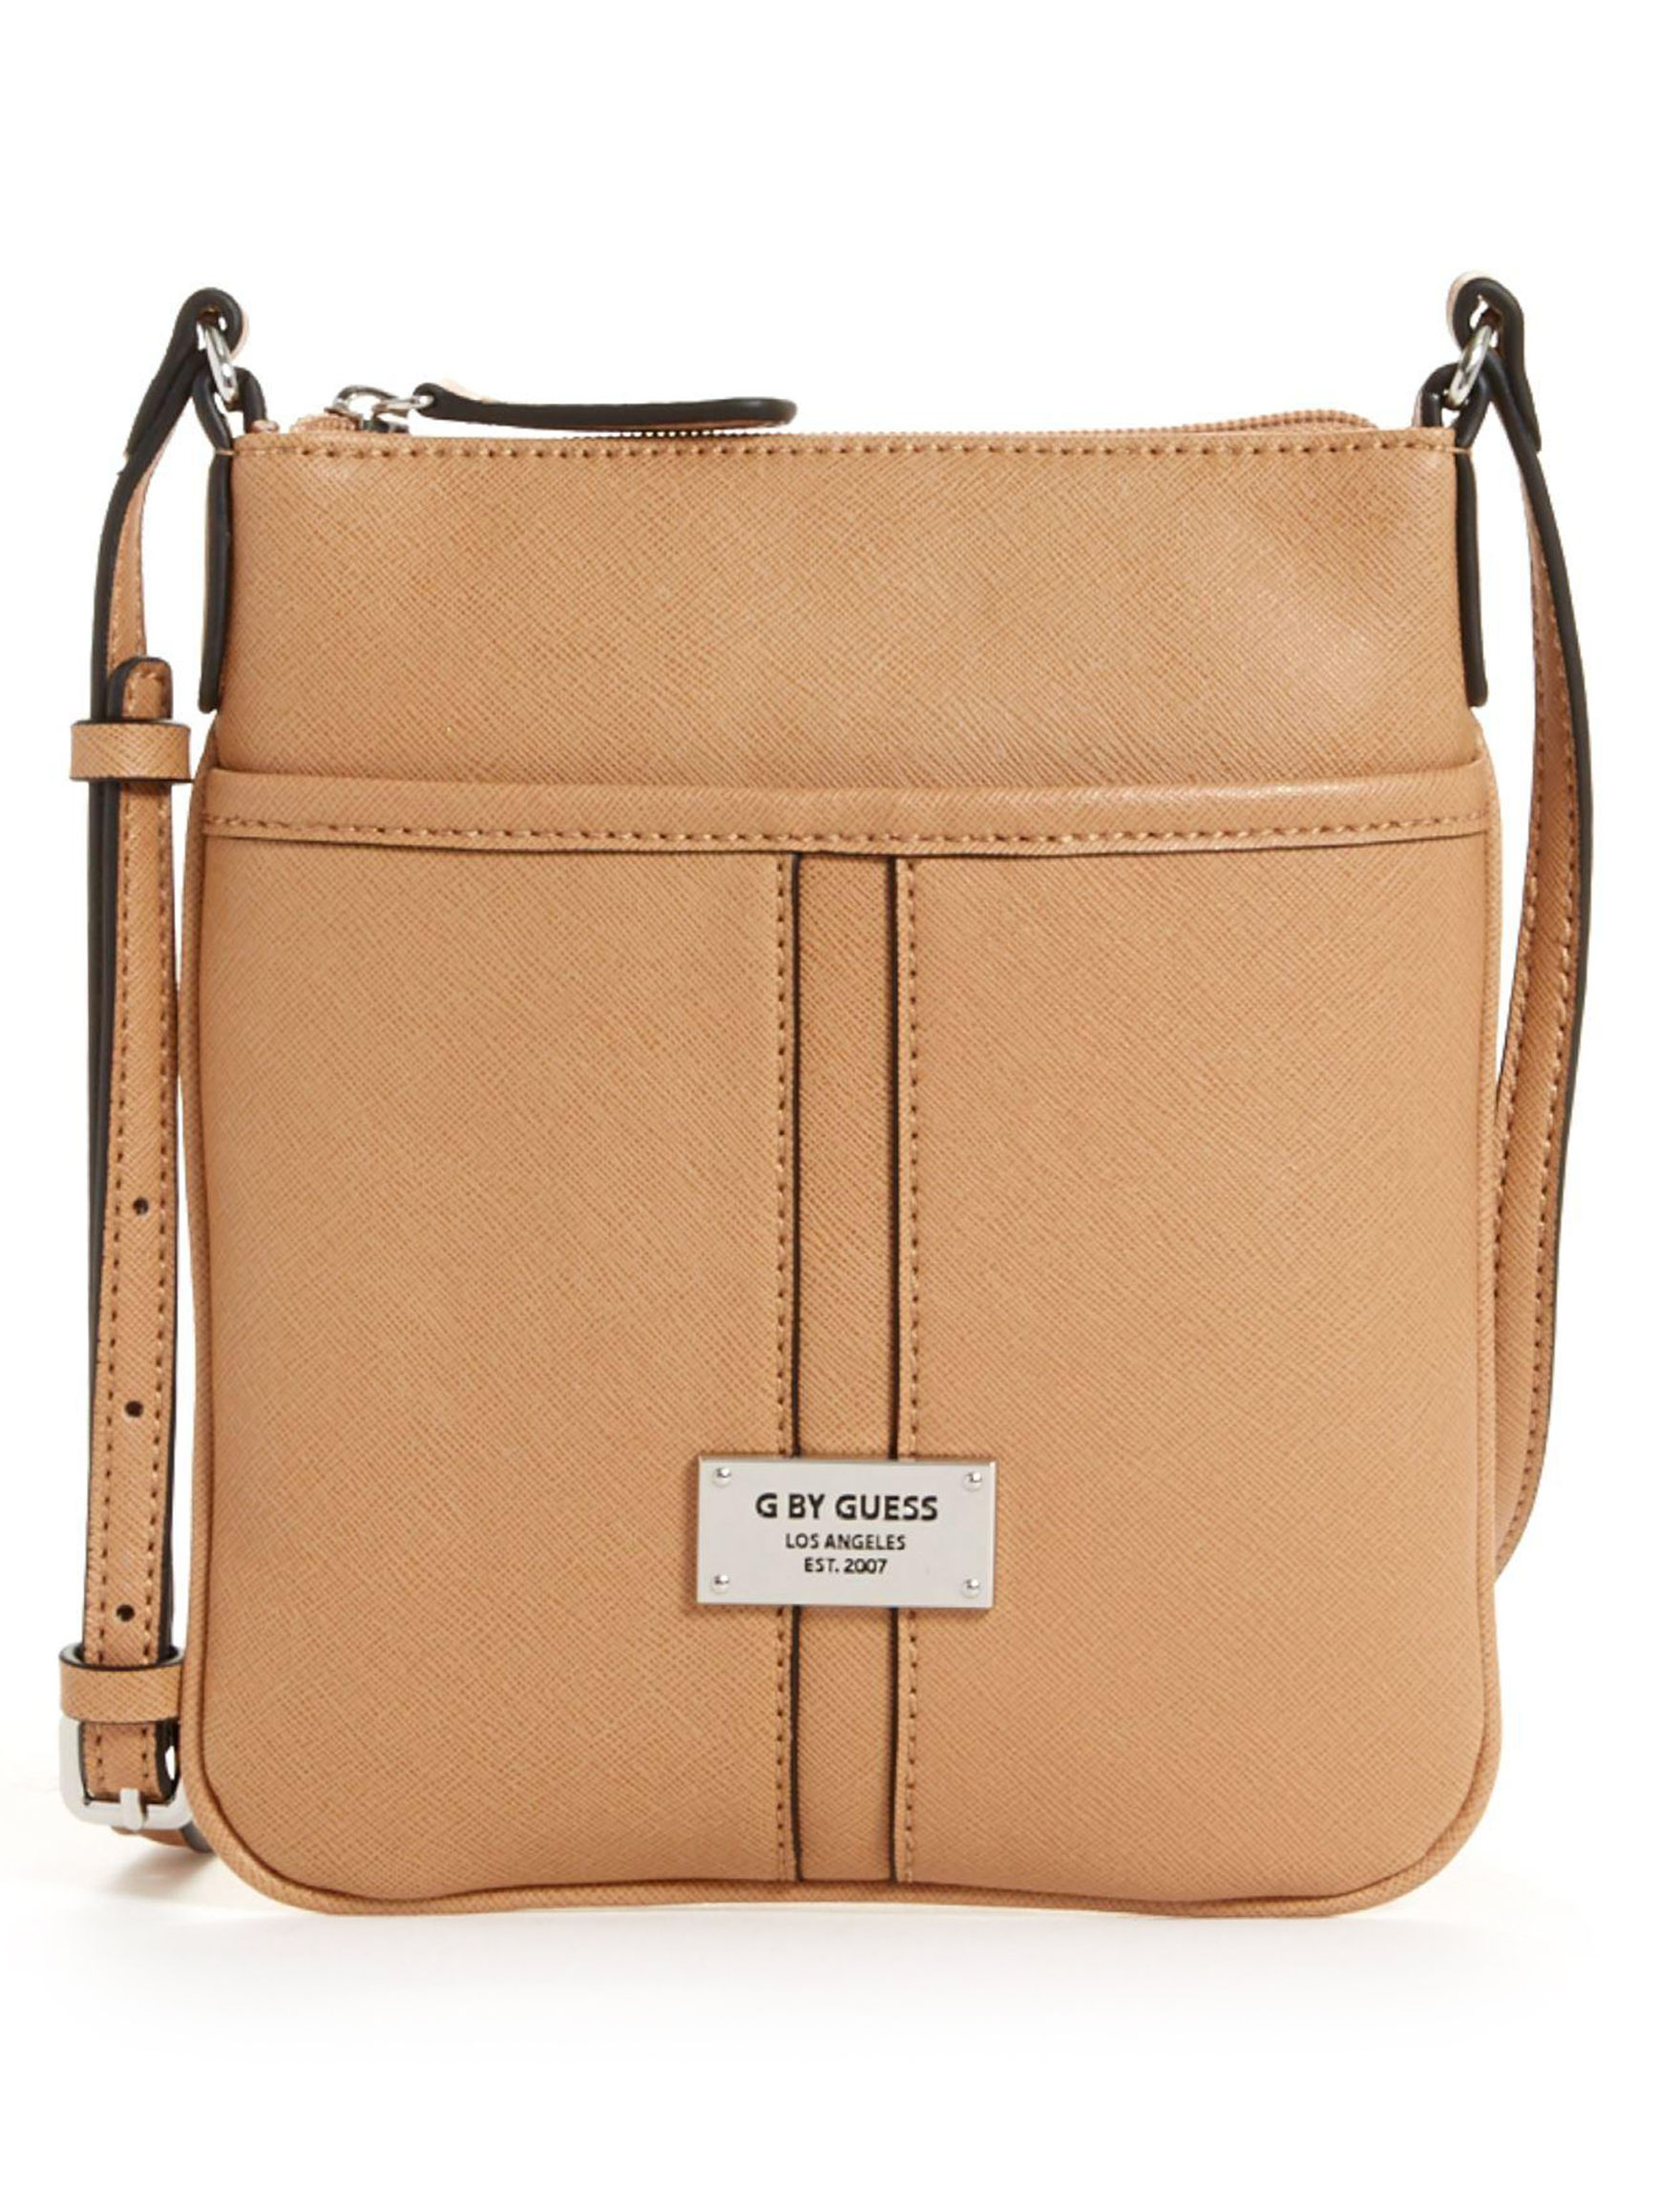 G by Guess Nude